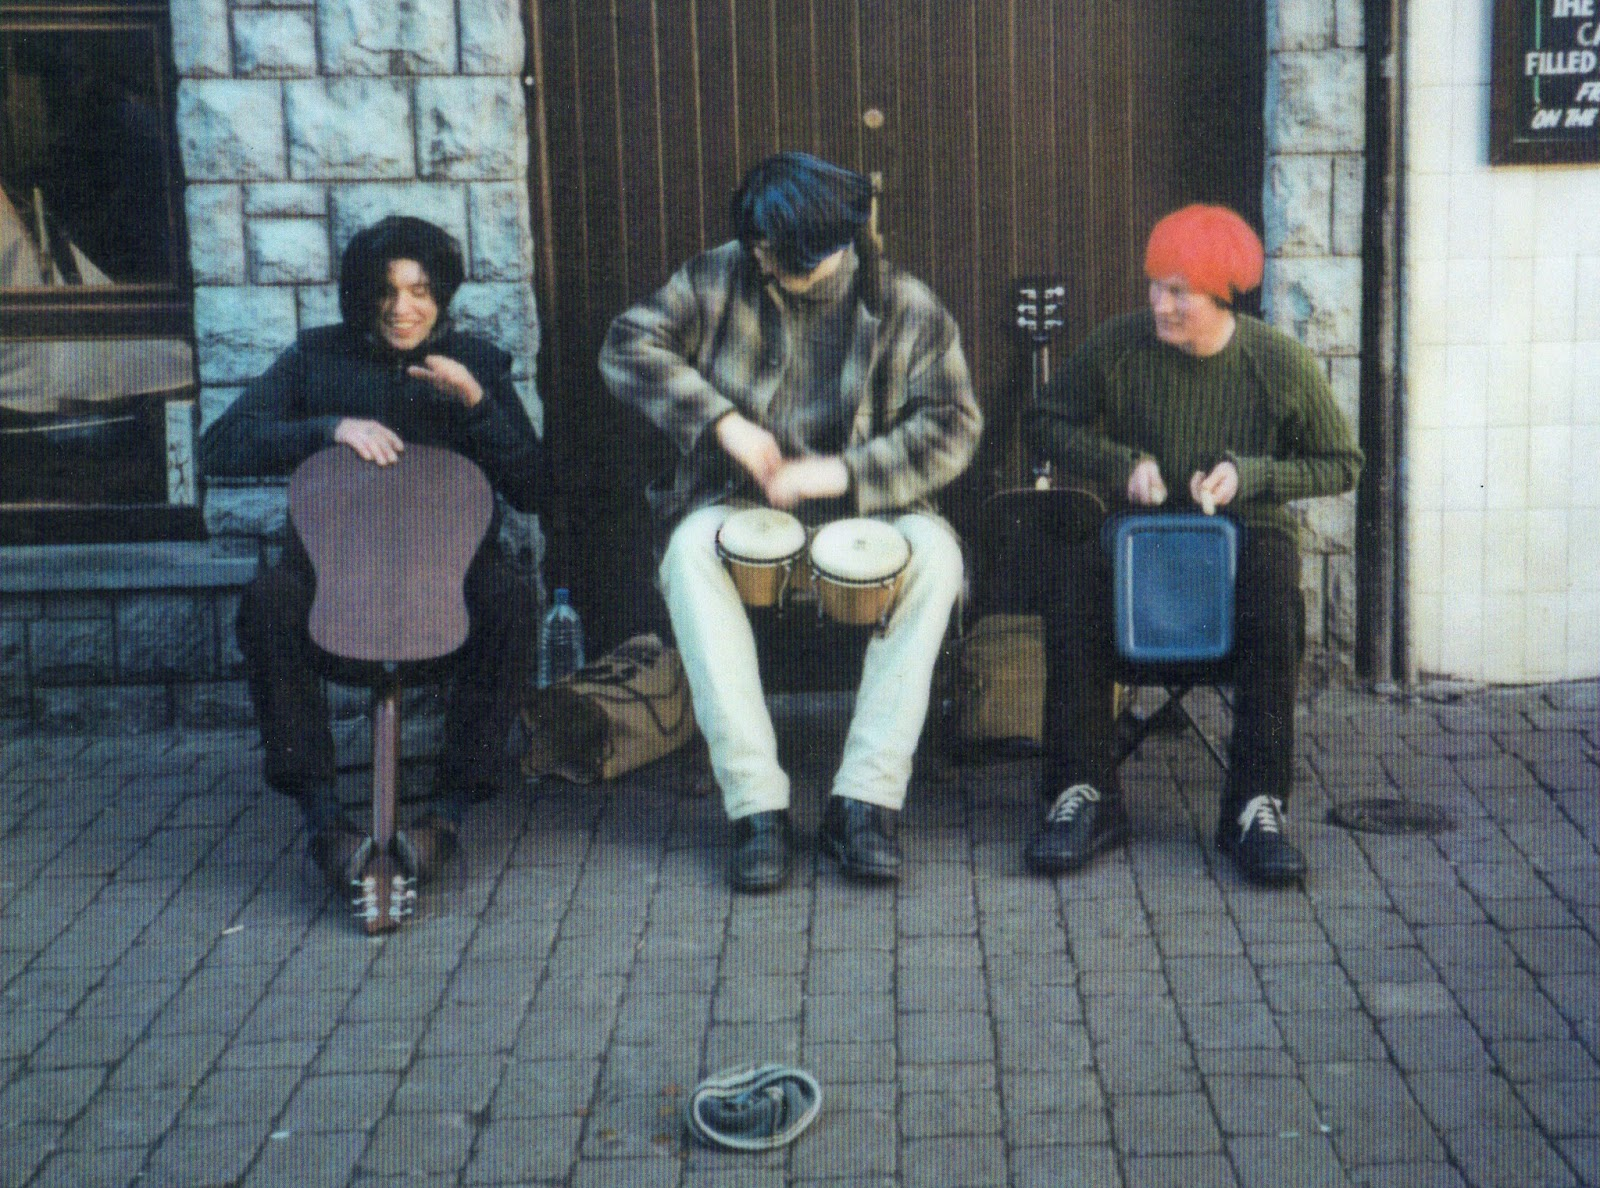 Three men in wigs busking in Galway, Ireland